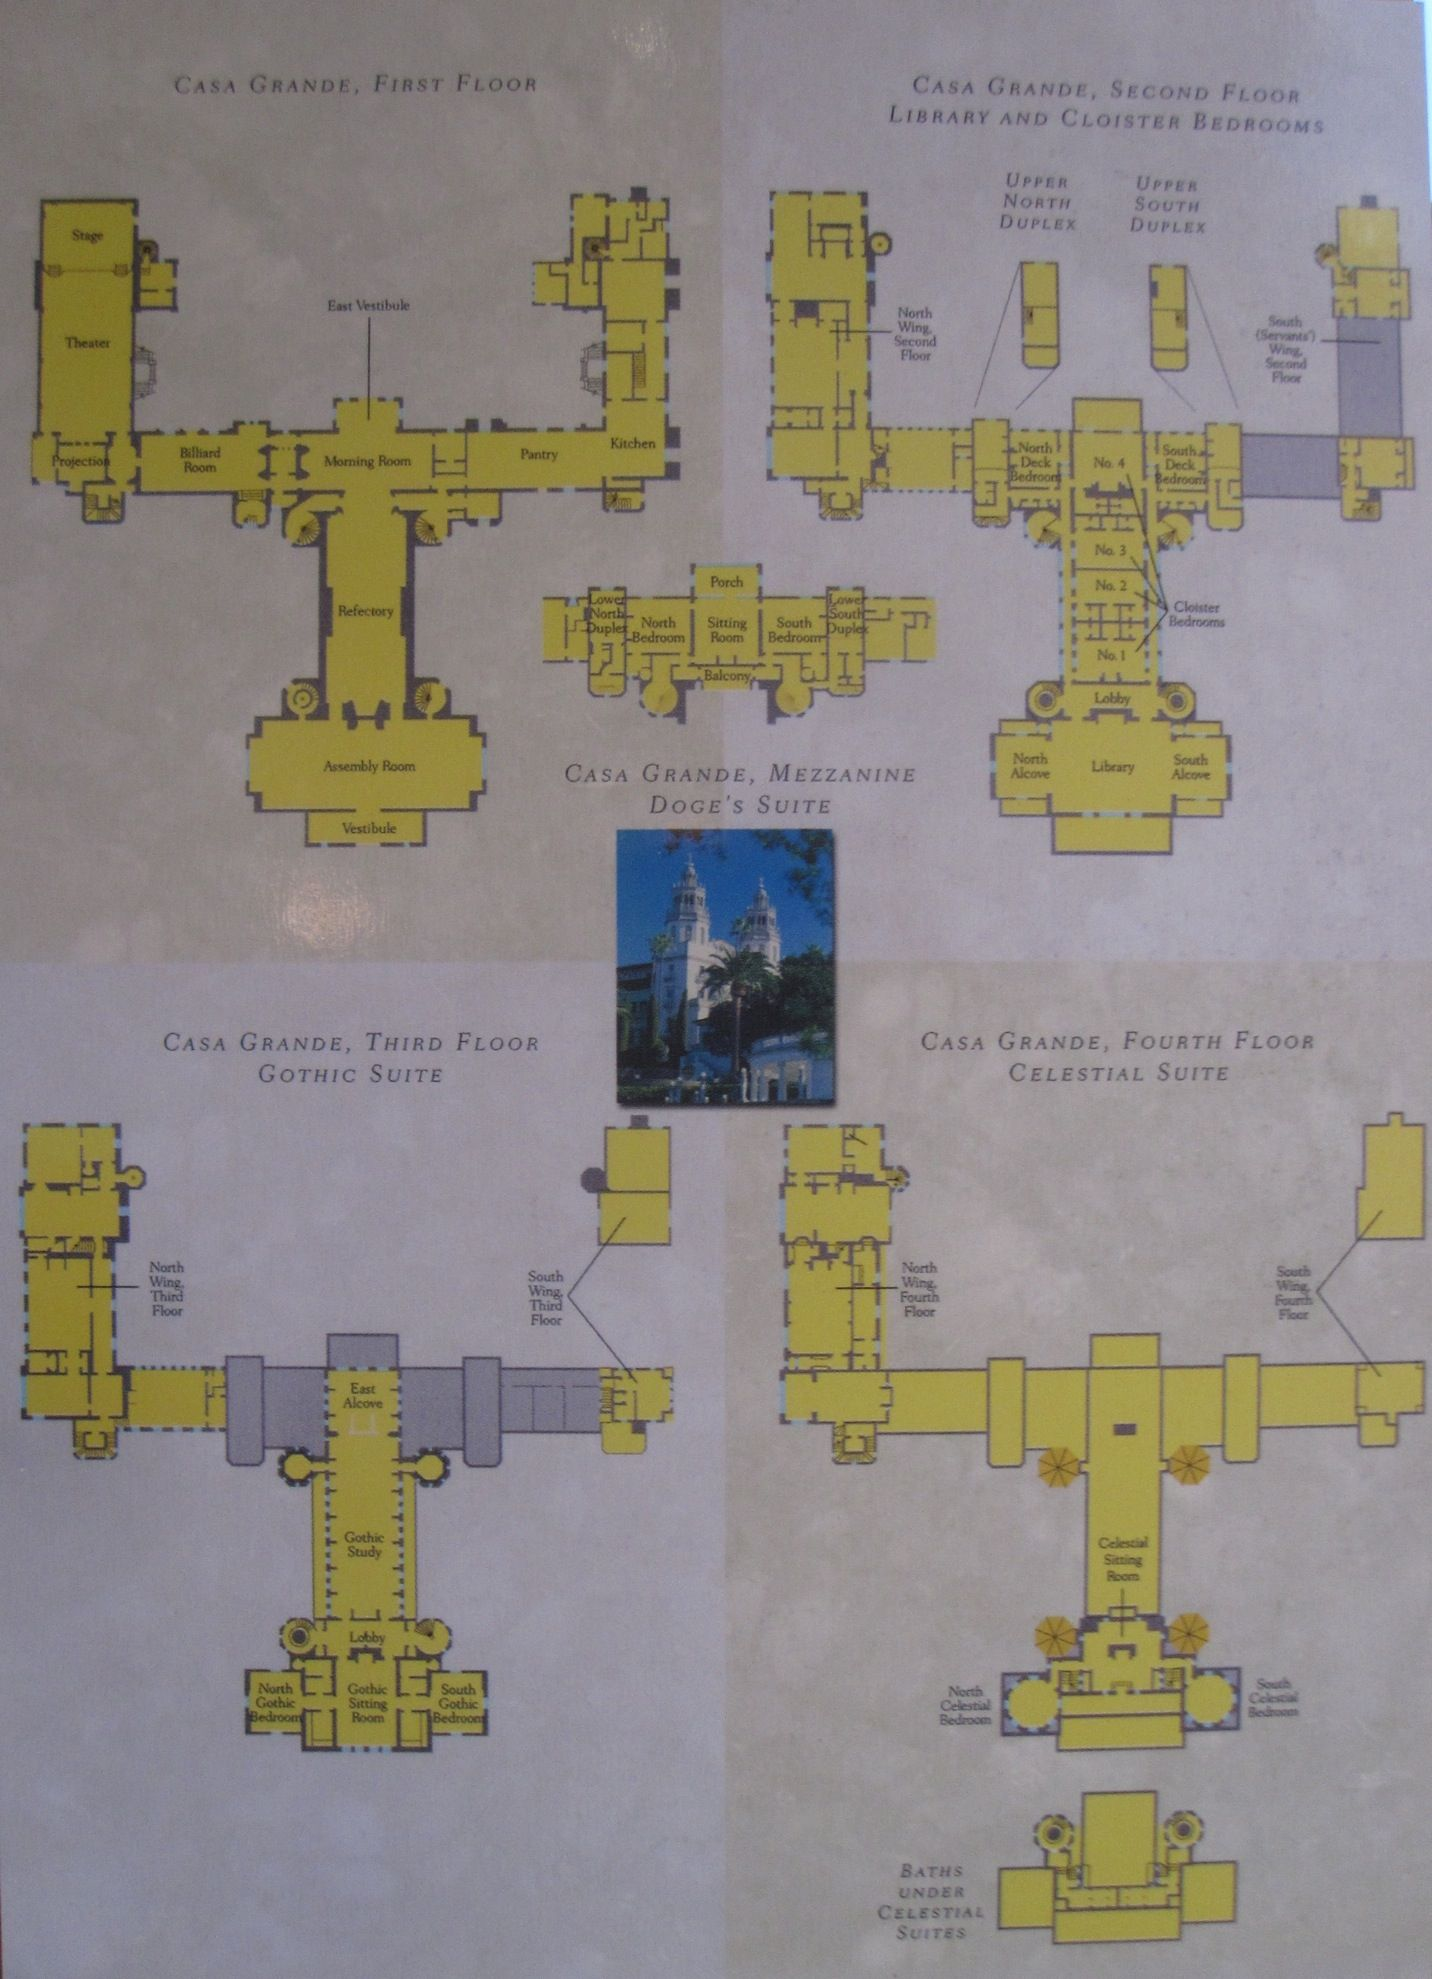 hearst castle | Mansions » Floor Plans to Hearst Castle | Just ...